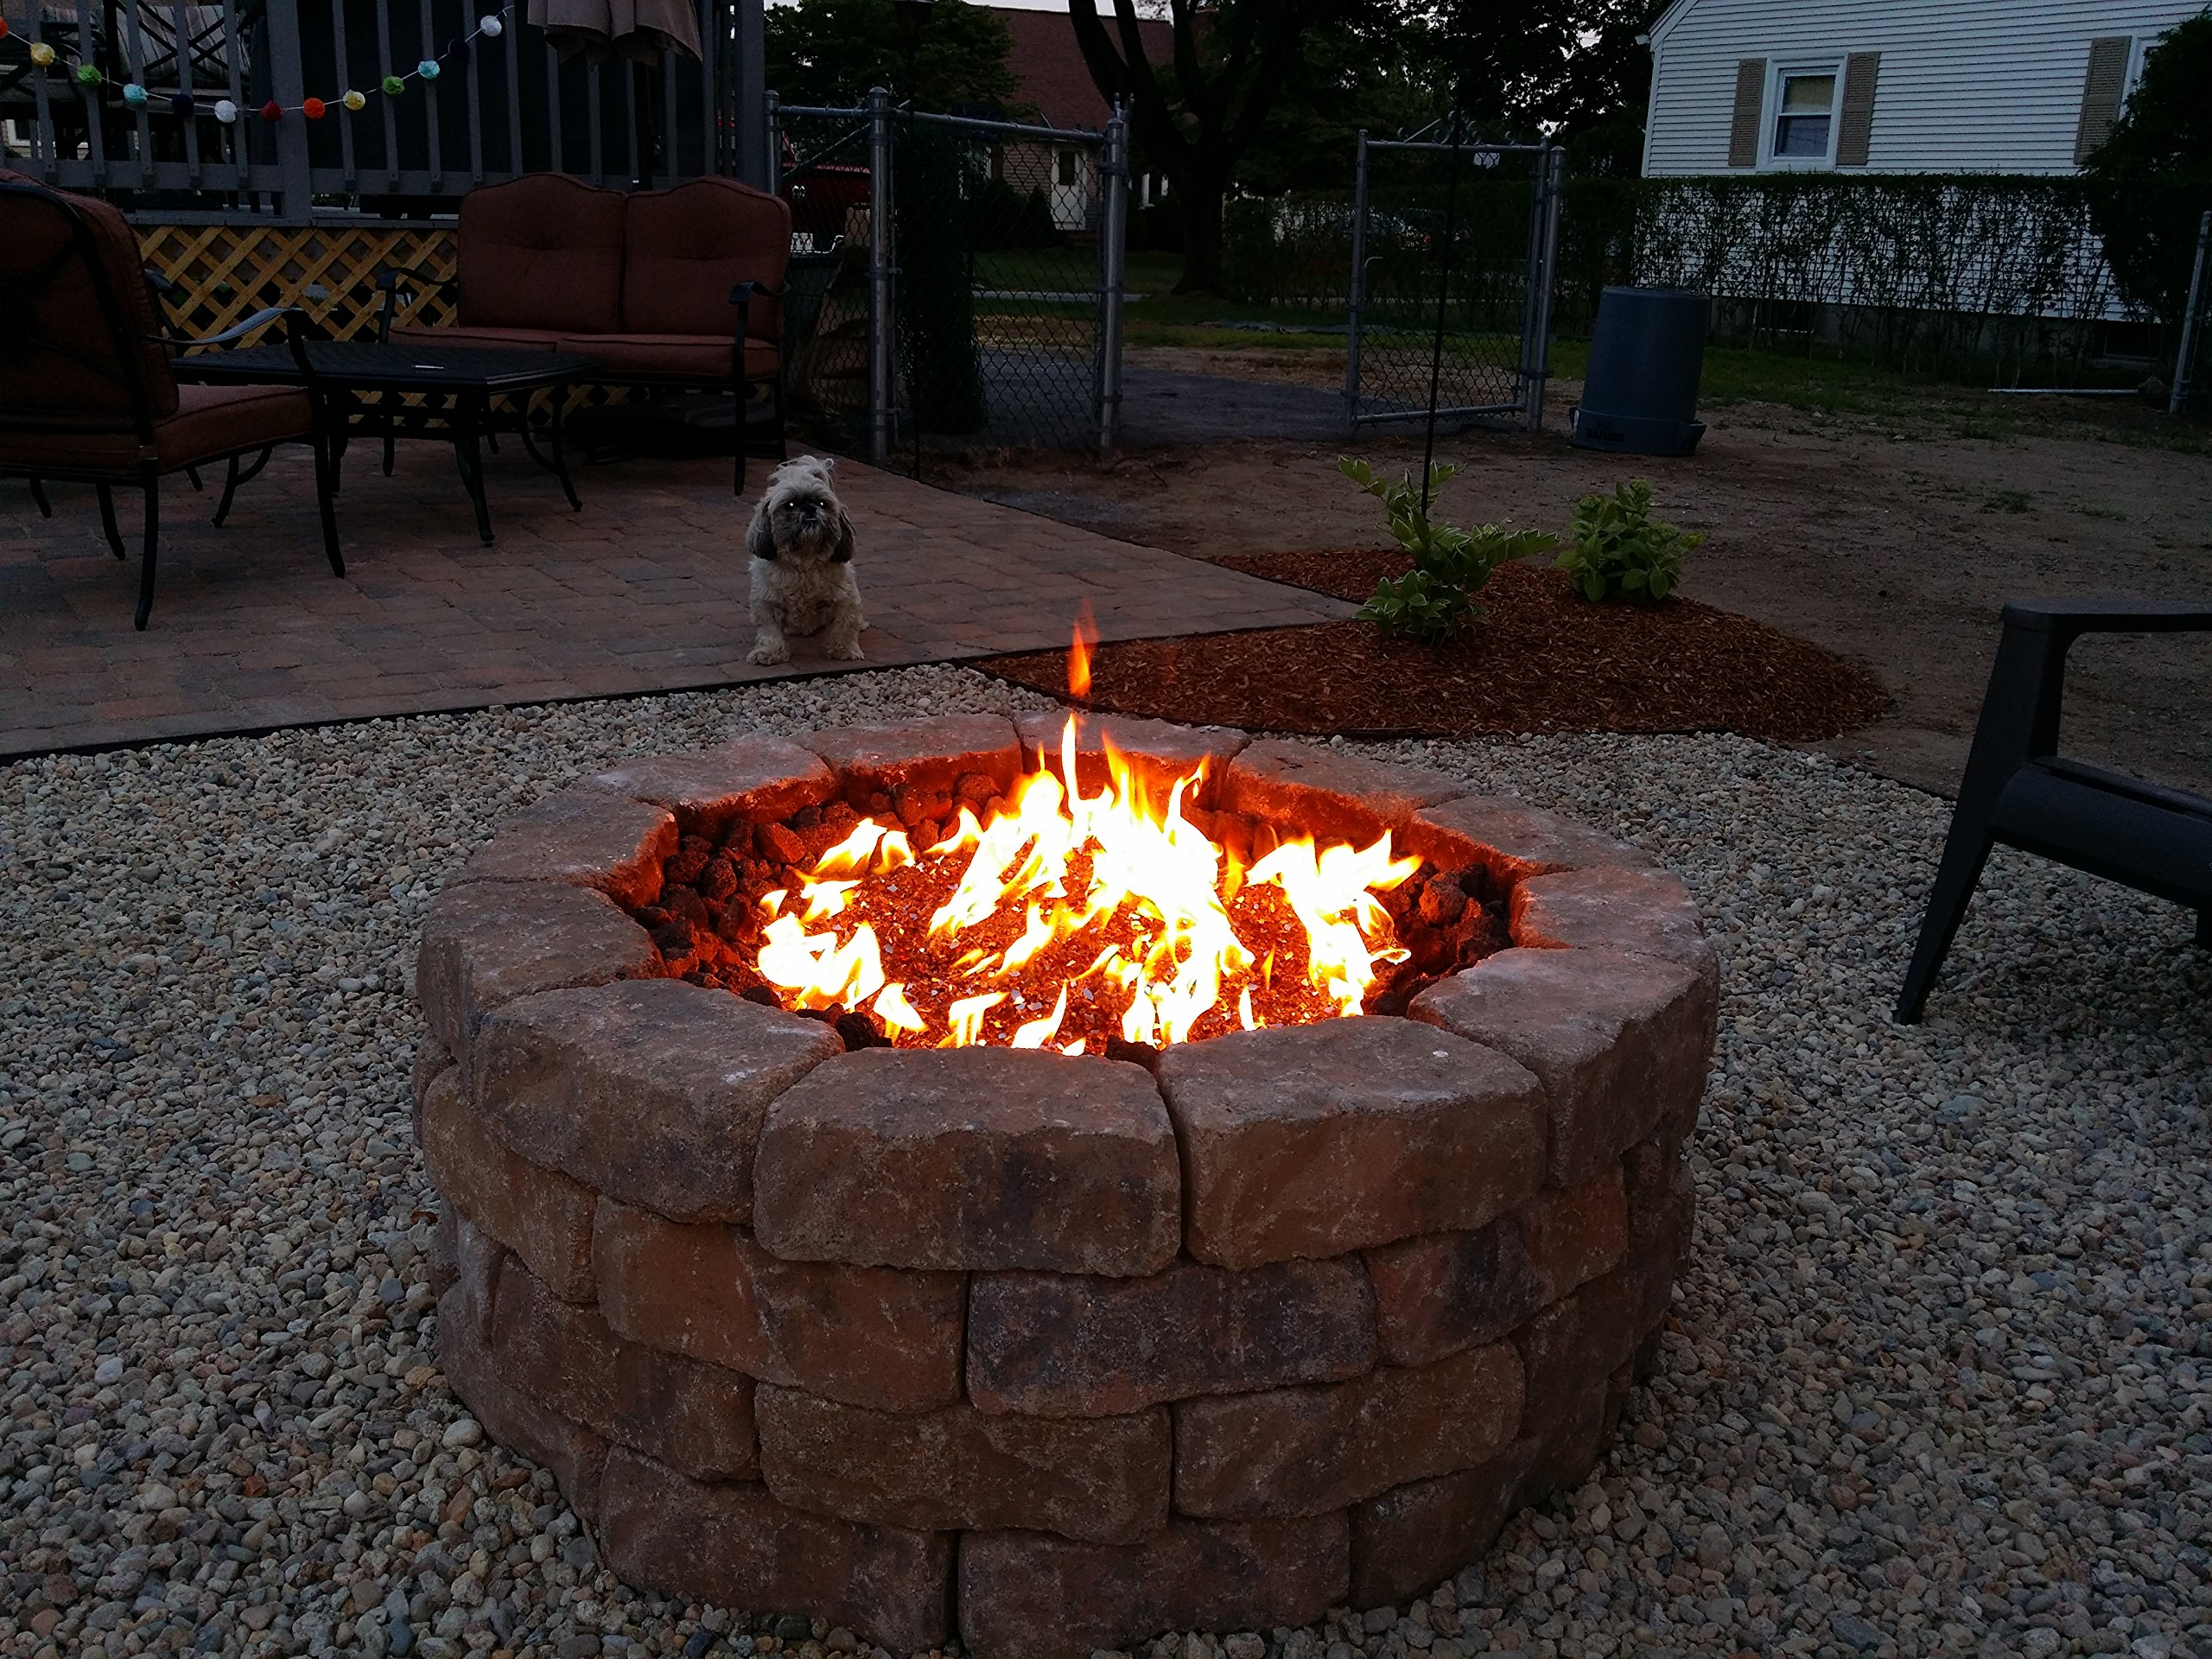 FR24CK+: Complete 24'' DELUXE Fire Pit Kit 316 Stainless Convert Existing Wood Fire Pit to Propane; Lifetime Burners all 316 Stainless (not Lessor 304). See EasyFirePits.com Gallery!